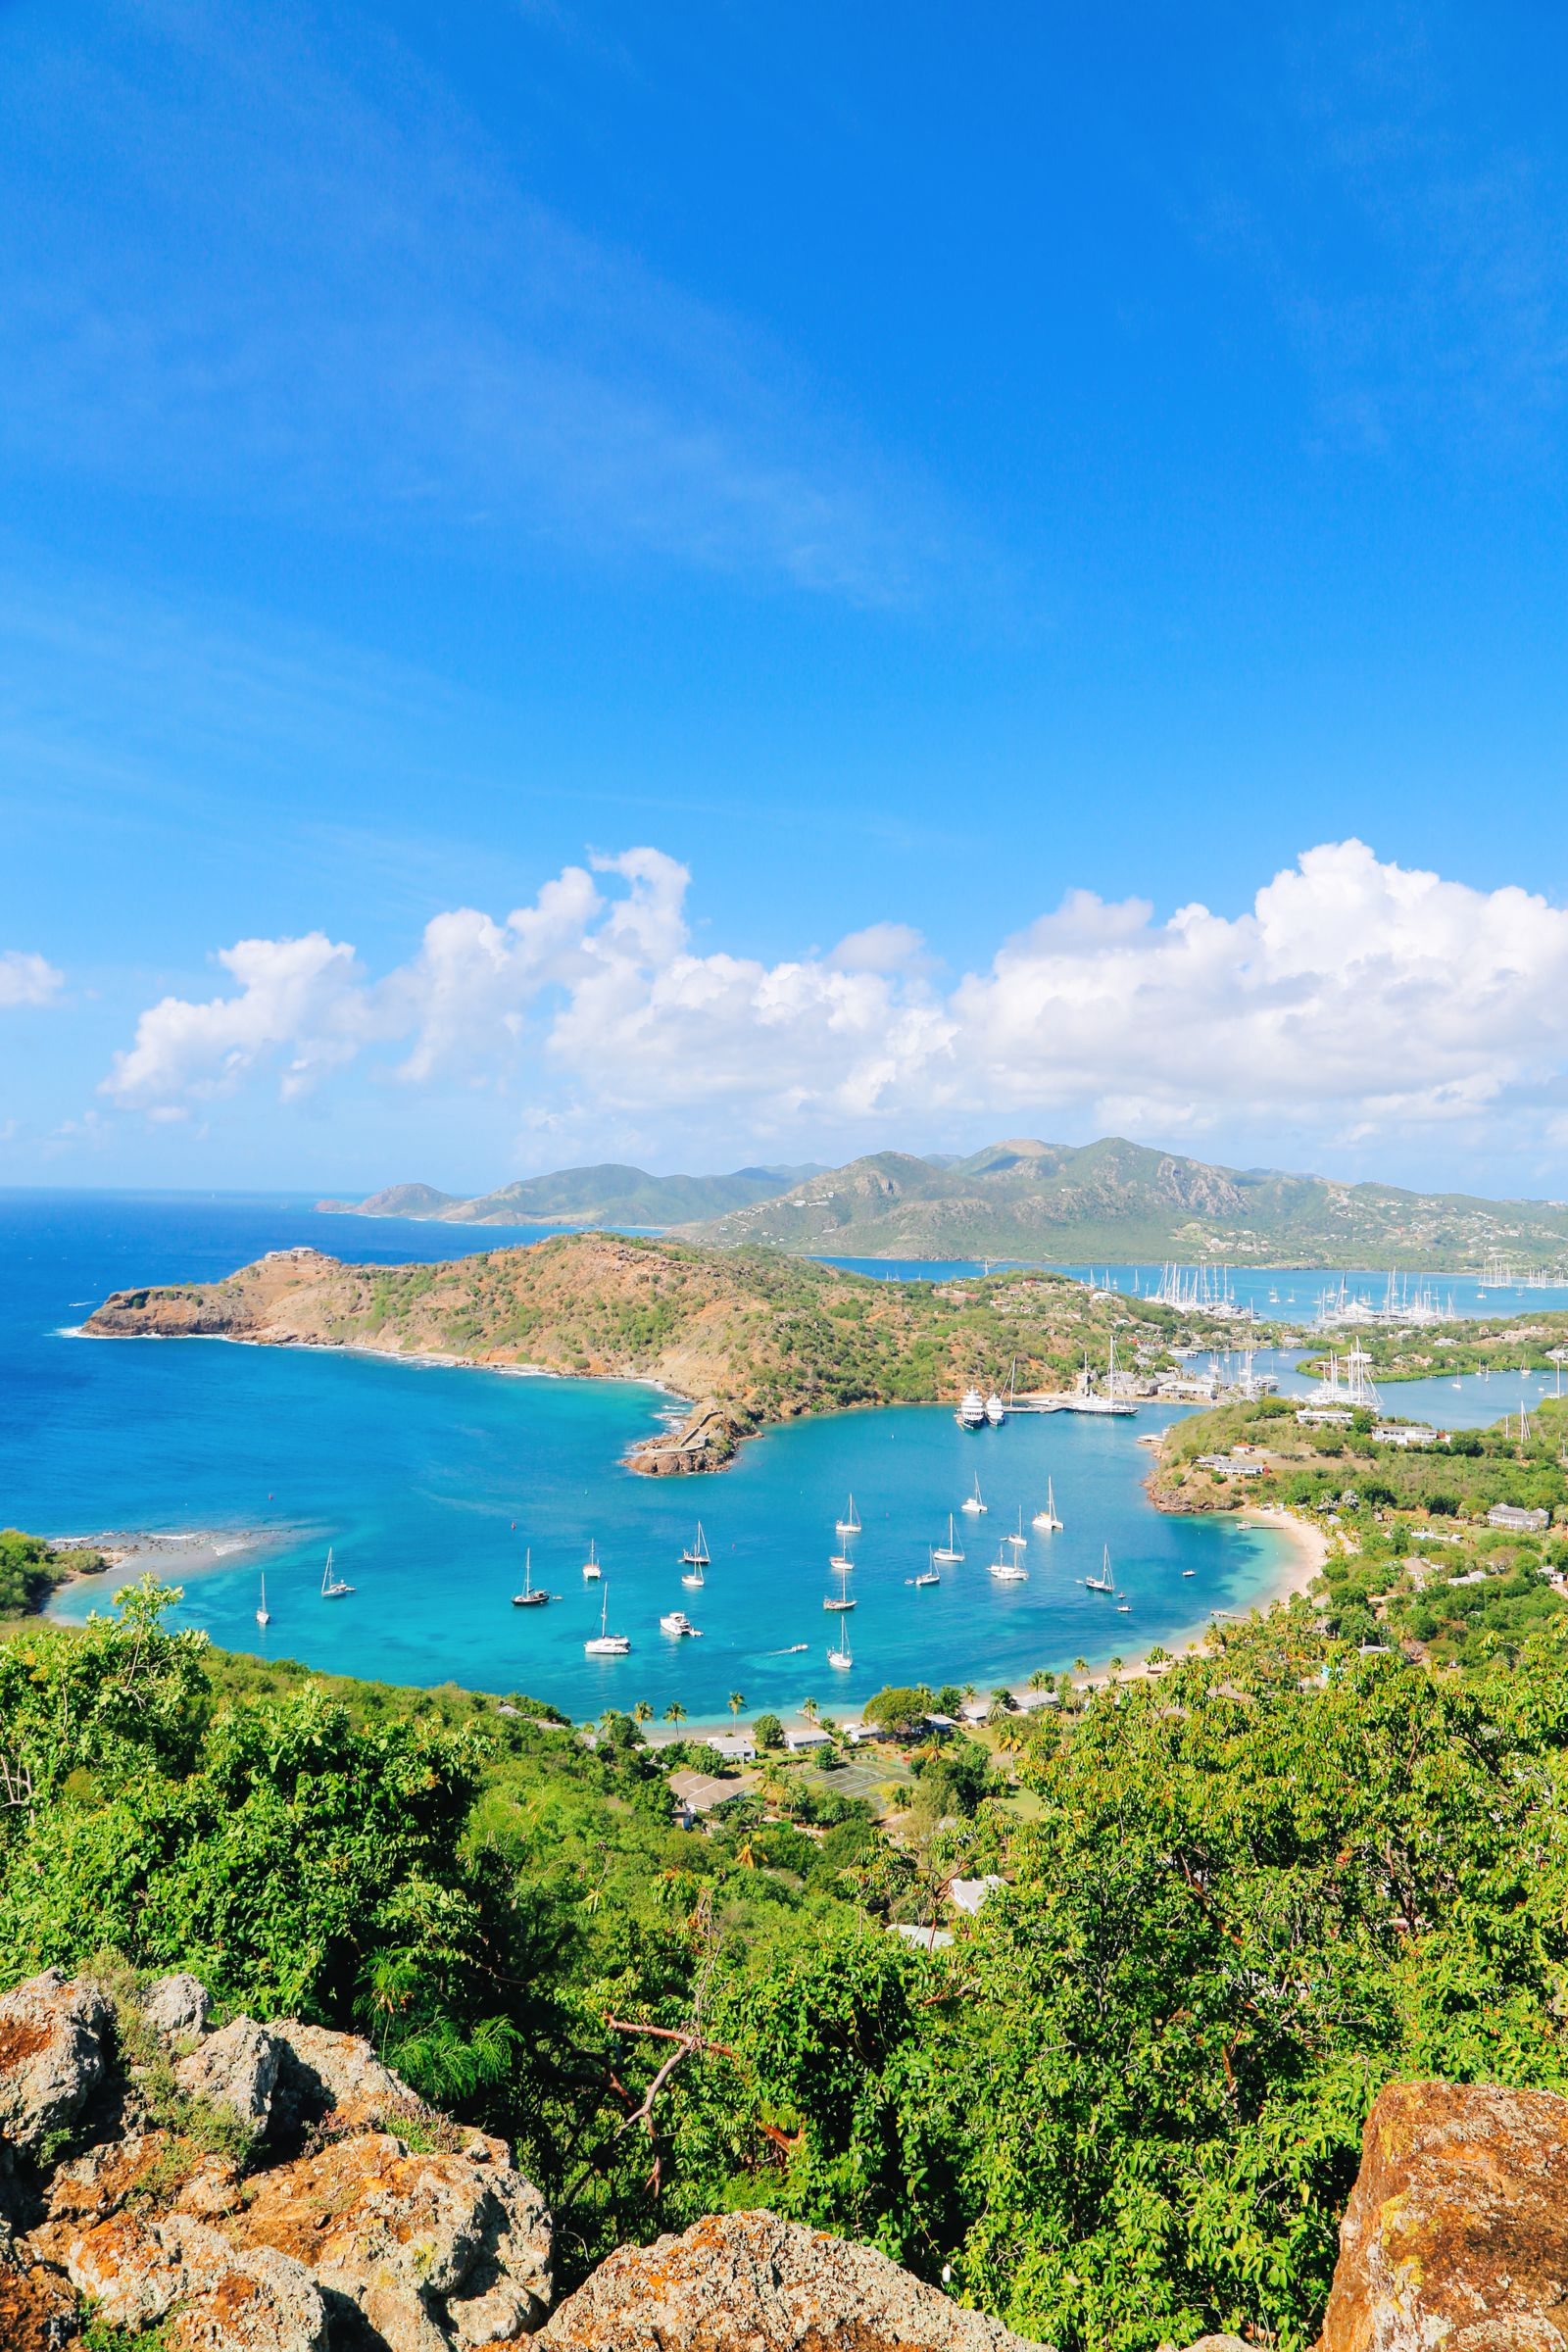 Exploring The Caribbean Island Of Antigua By Land - Part 2 (11)